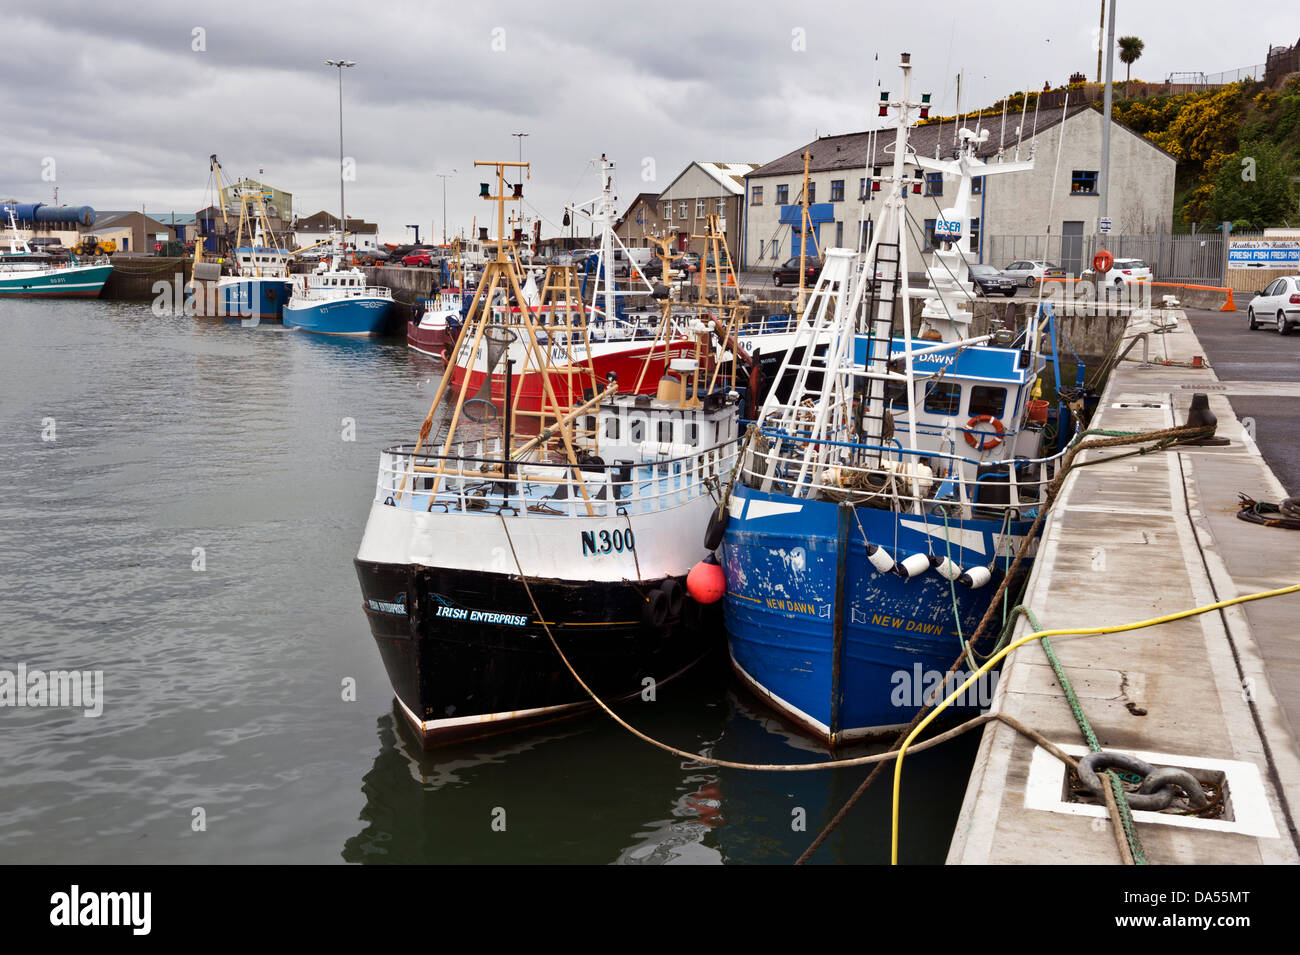 Kilkeel harbour, County Down, Northern Ireland - Stock Image